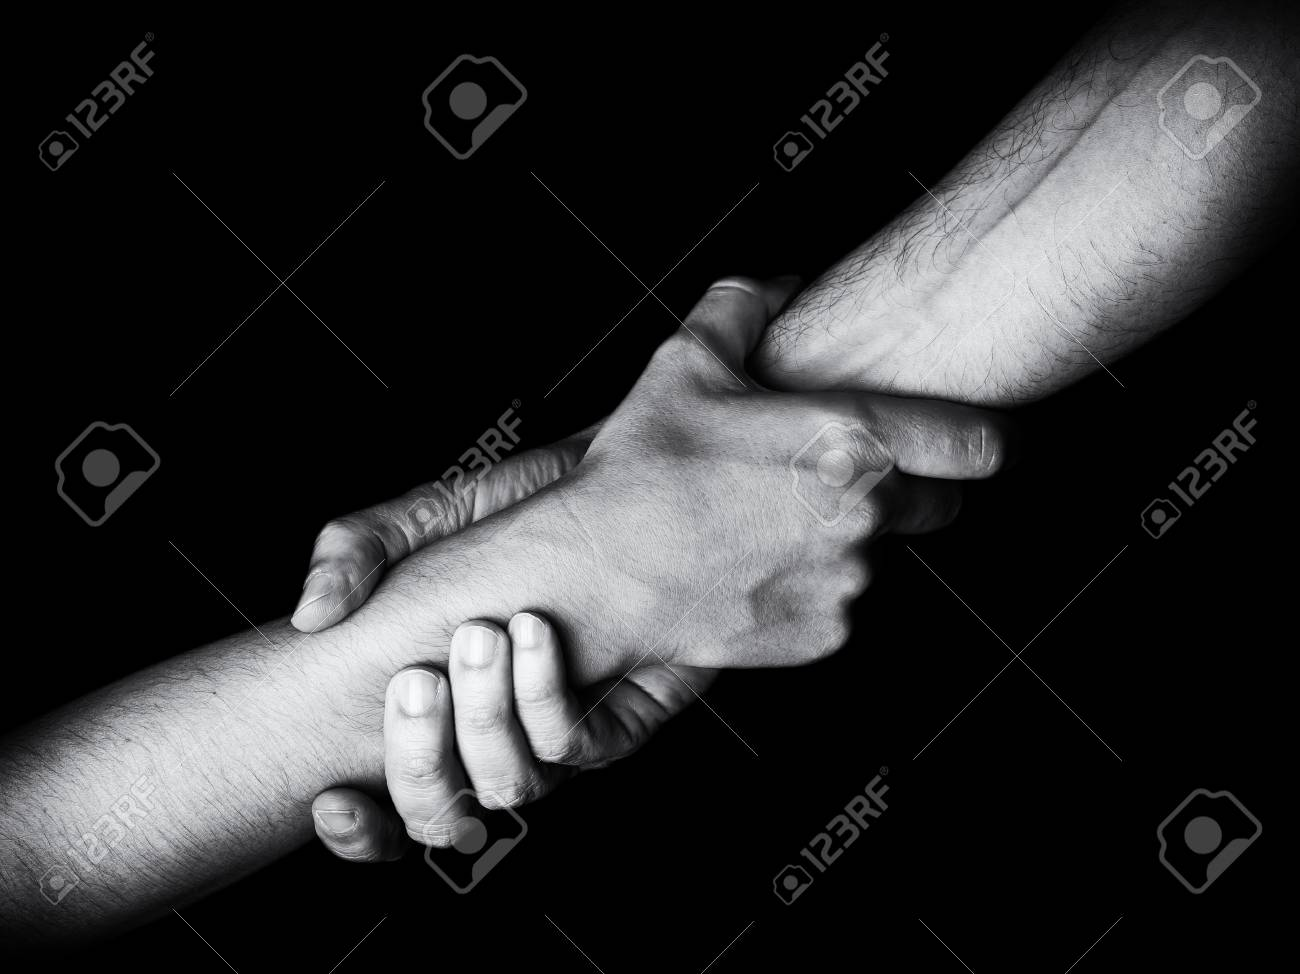 Man saving, rescuing and helping woman by holding or griping the forearm. Male hand and arm pulling up female. Concept of rescue, love, friendship, support, teamwork, partnership, reaching, couple - 91296702